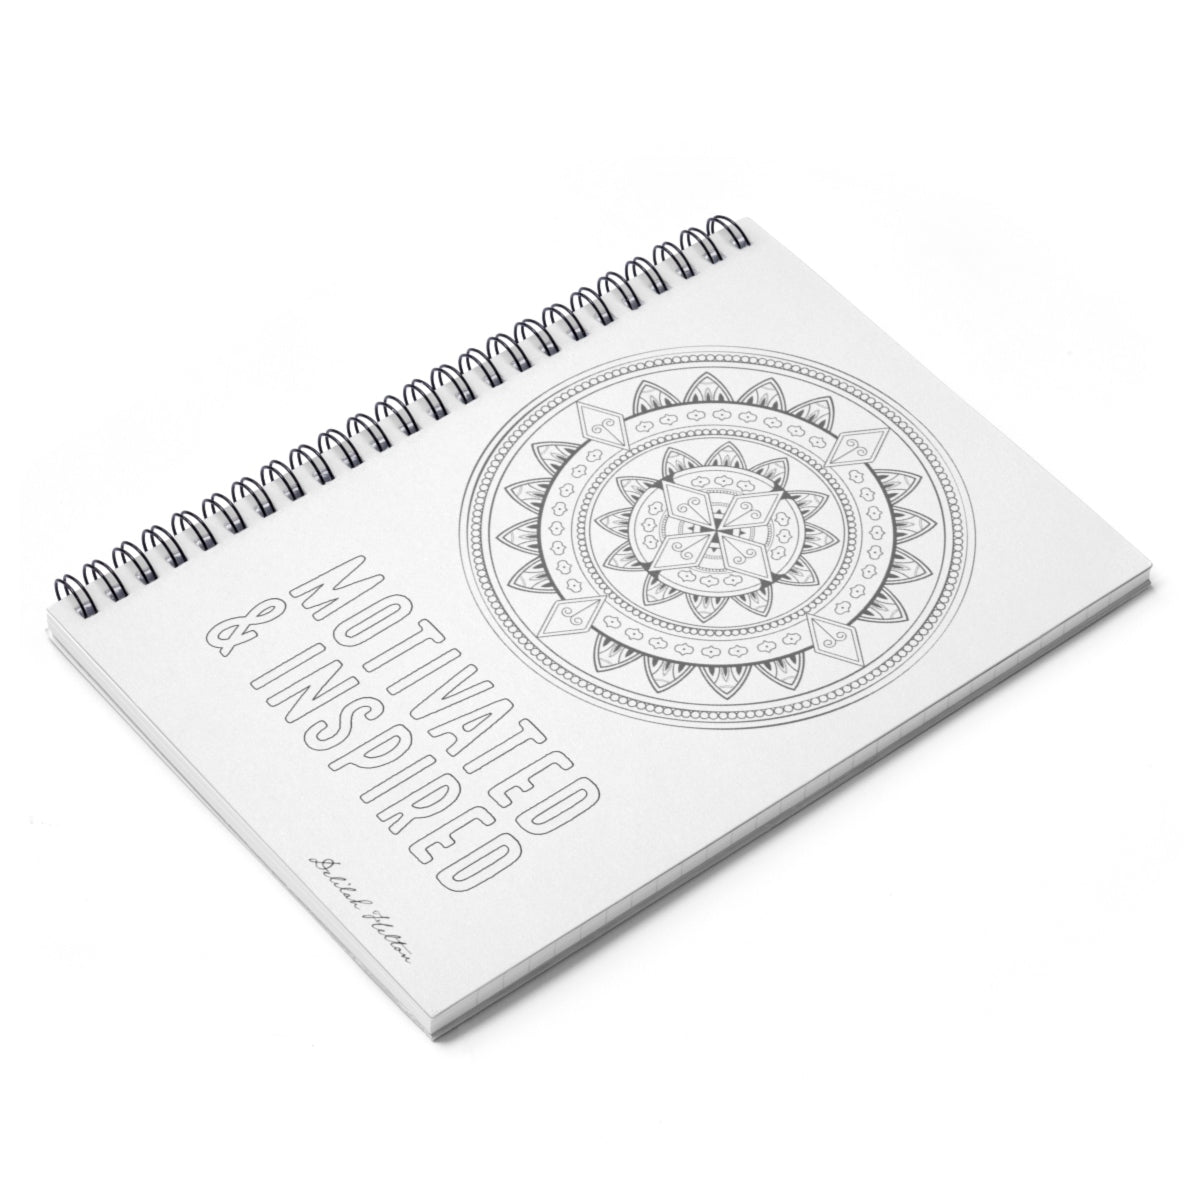 Motivated and Inspired - Color The Cover Spiral Notebook - Ruled Line